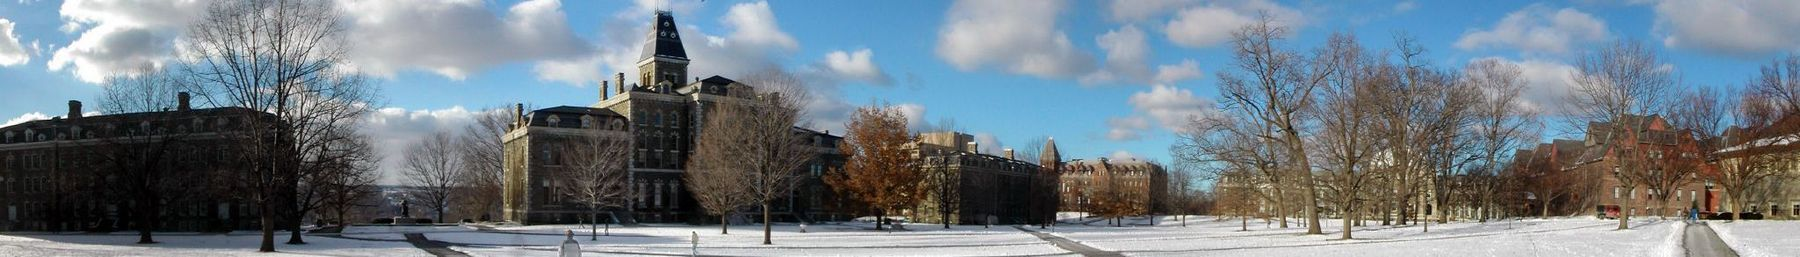 Cornell Central Campus in Snow - banner.jpg